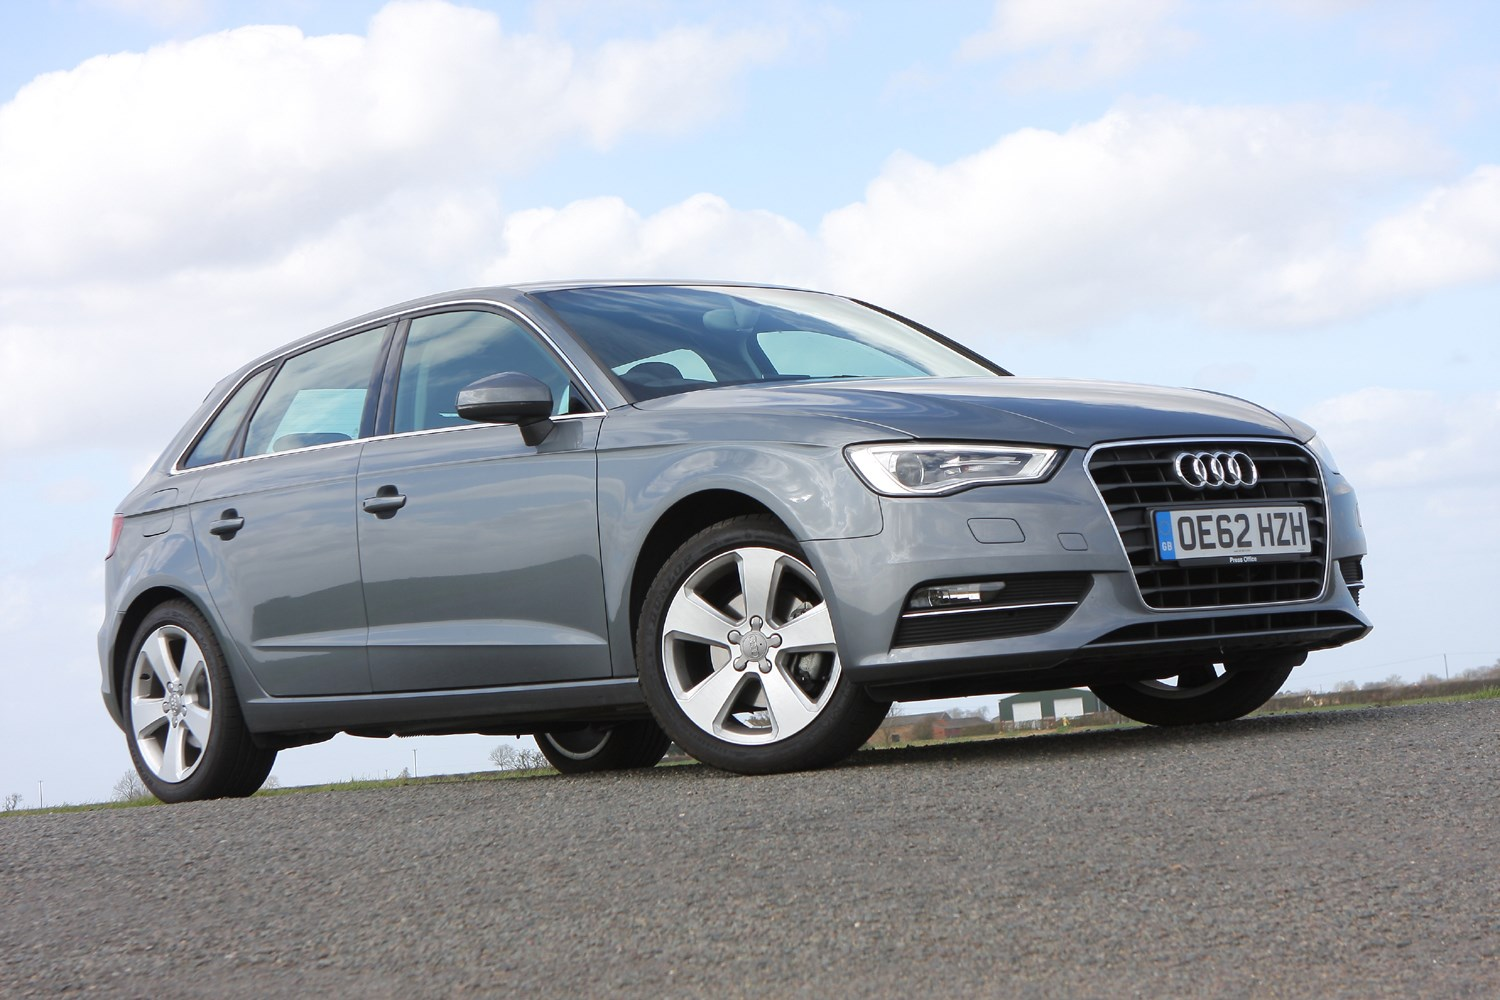 Used Audi A3 Sportback (2013 - 2020) Review | Parkers